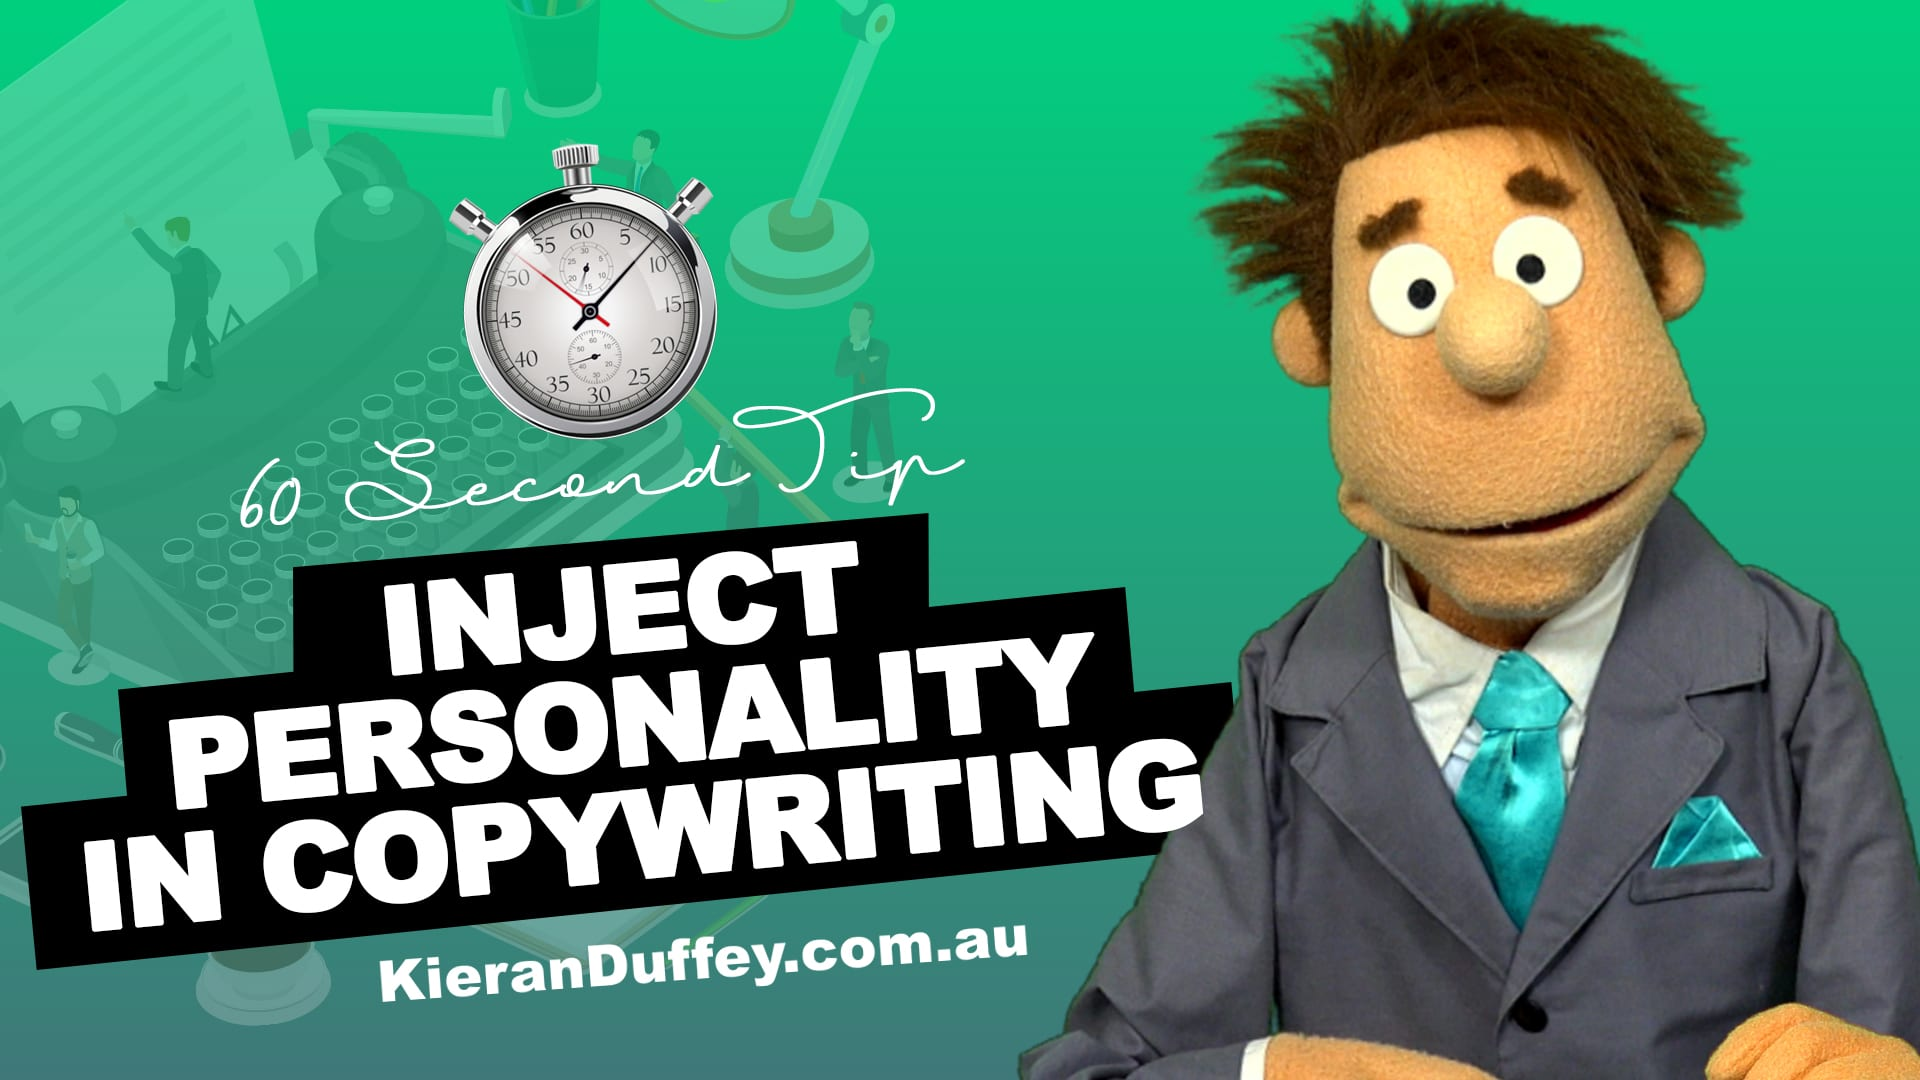 Video explaining importance of injecting personality in copywriting